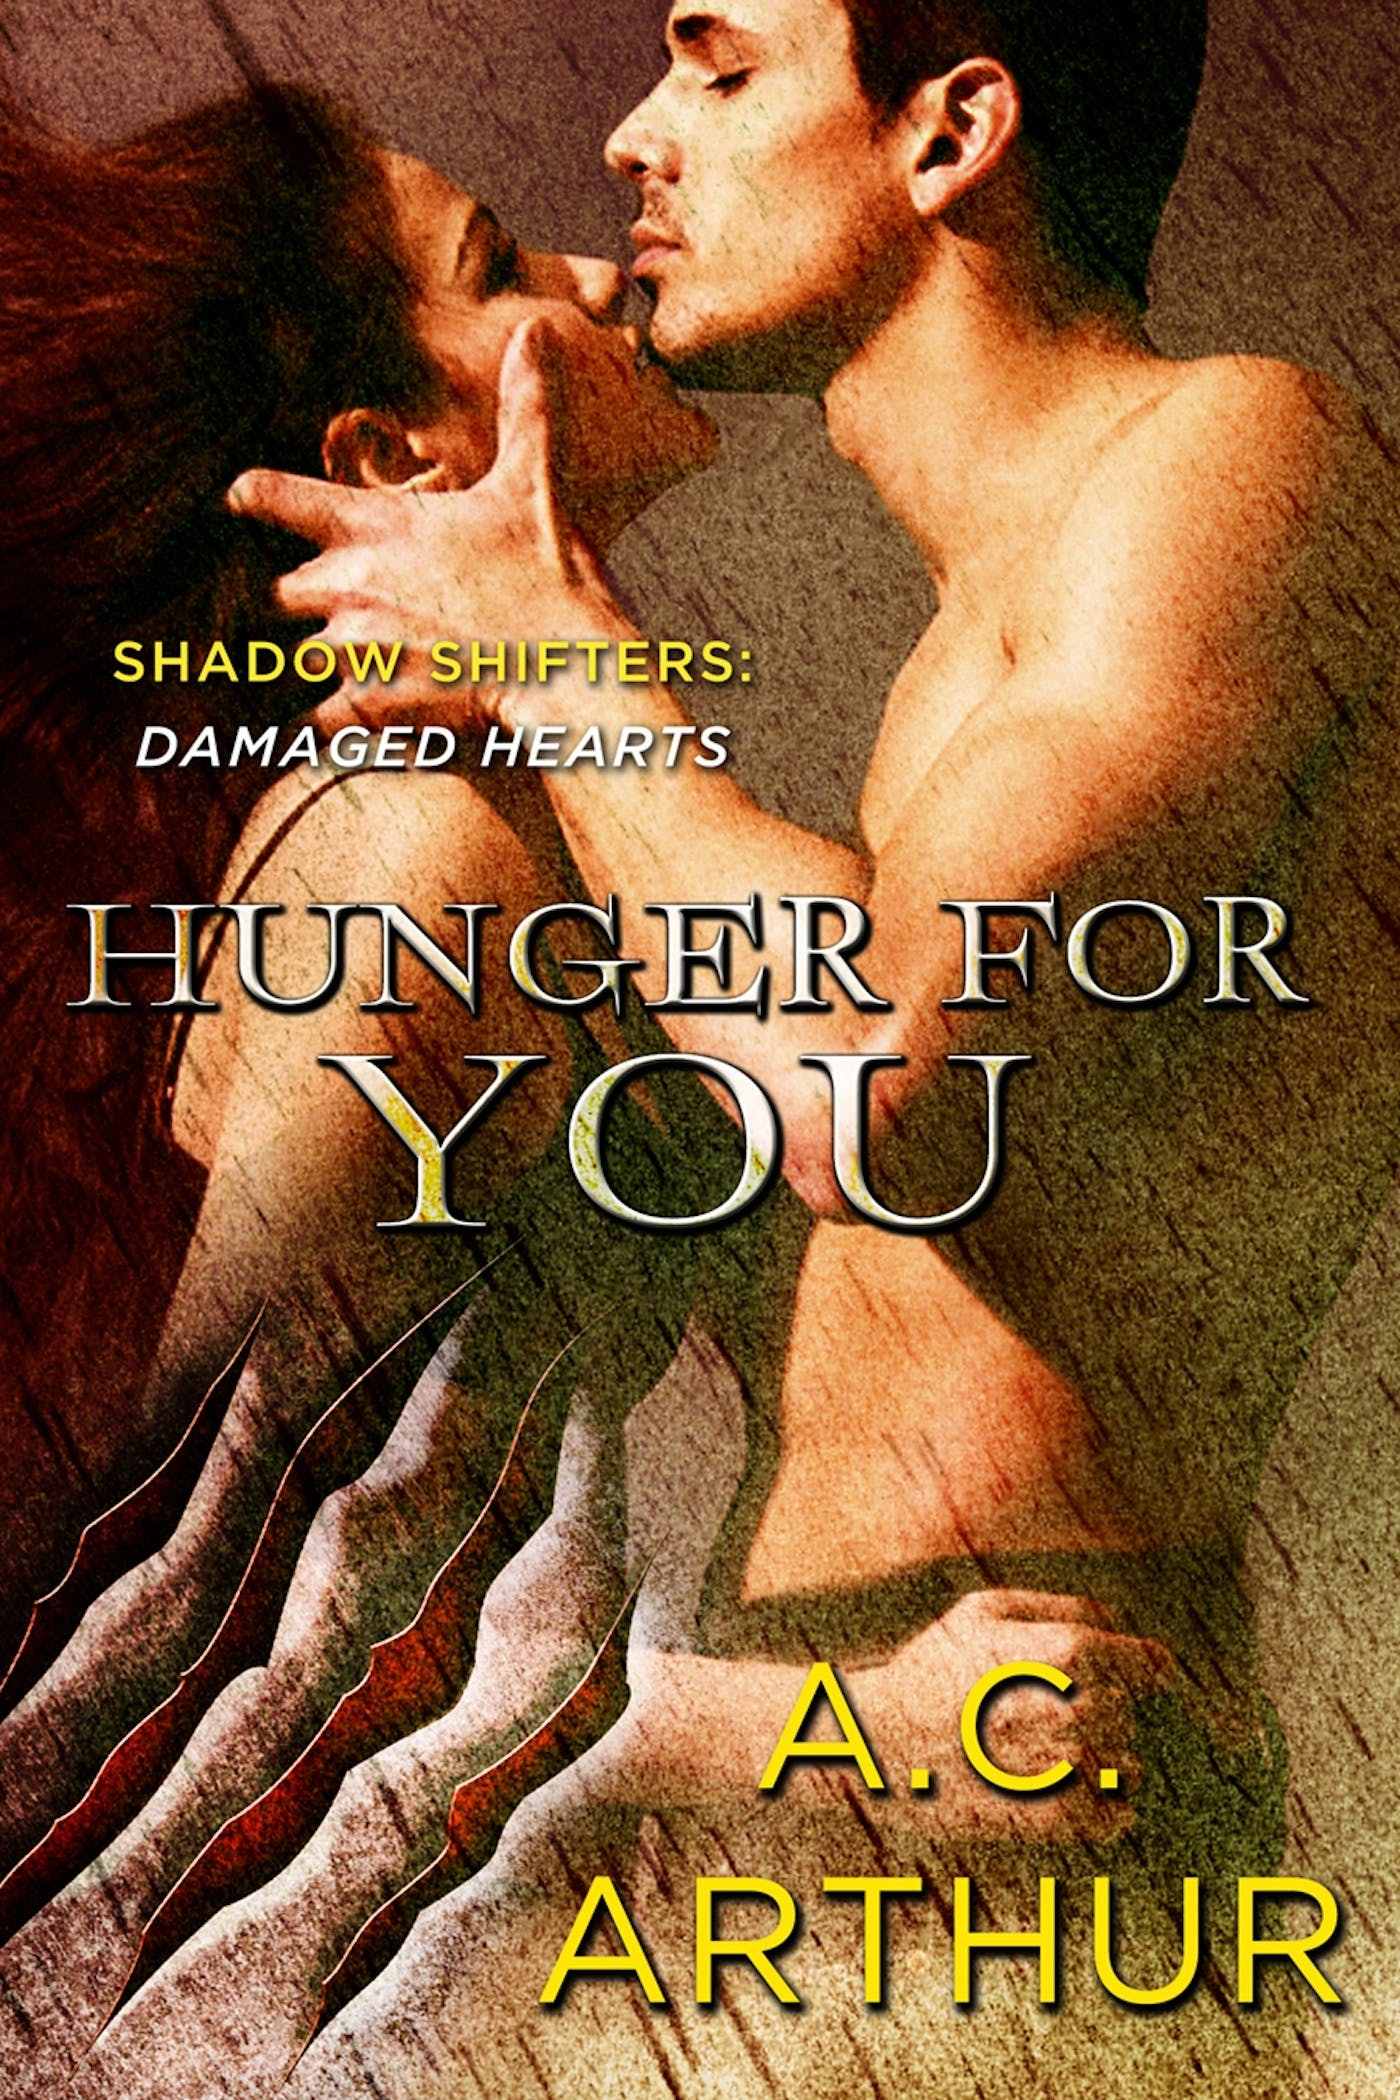 Image of Hunger for You